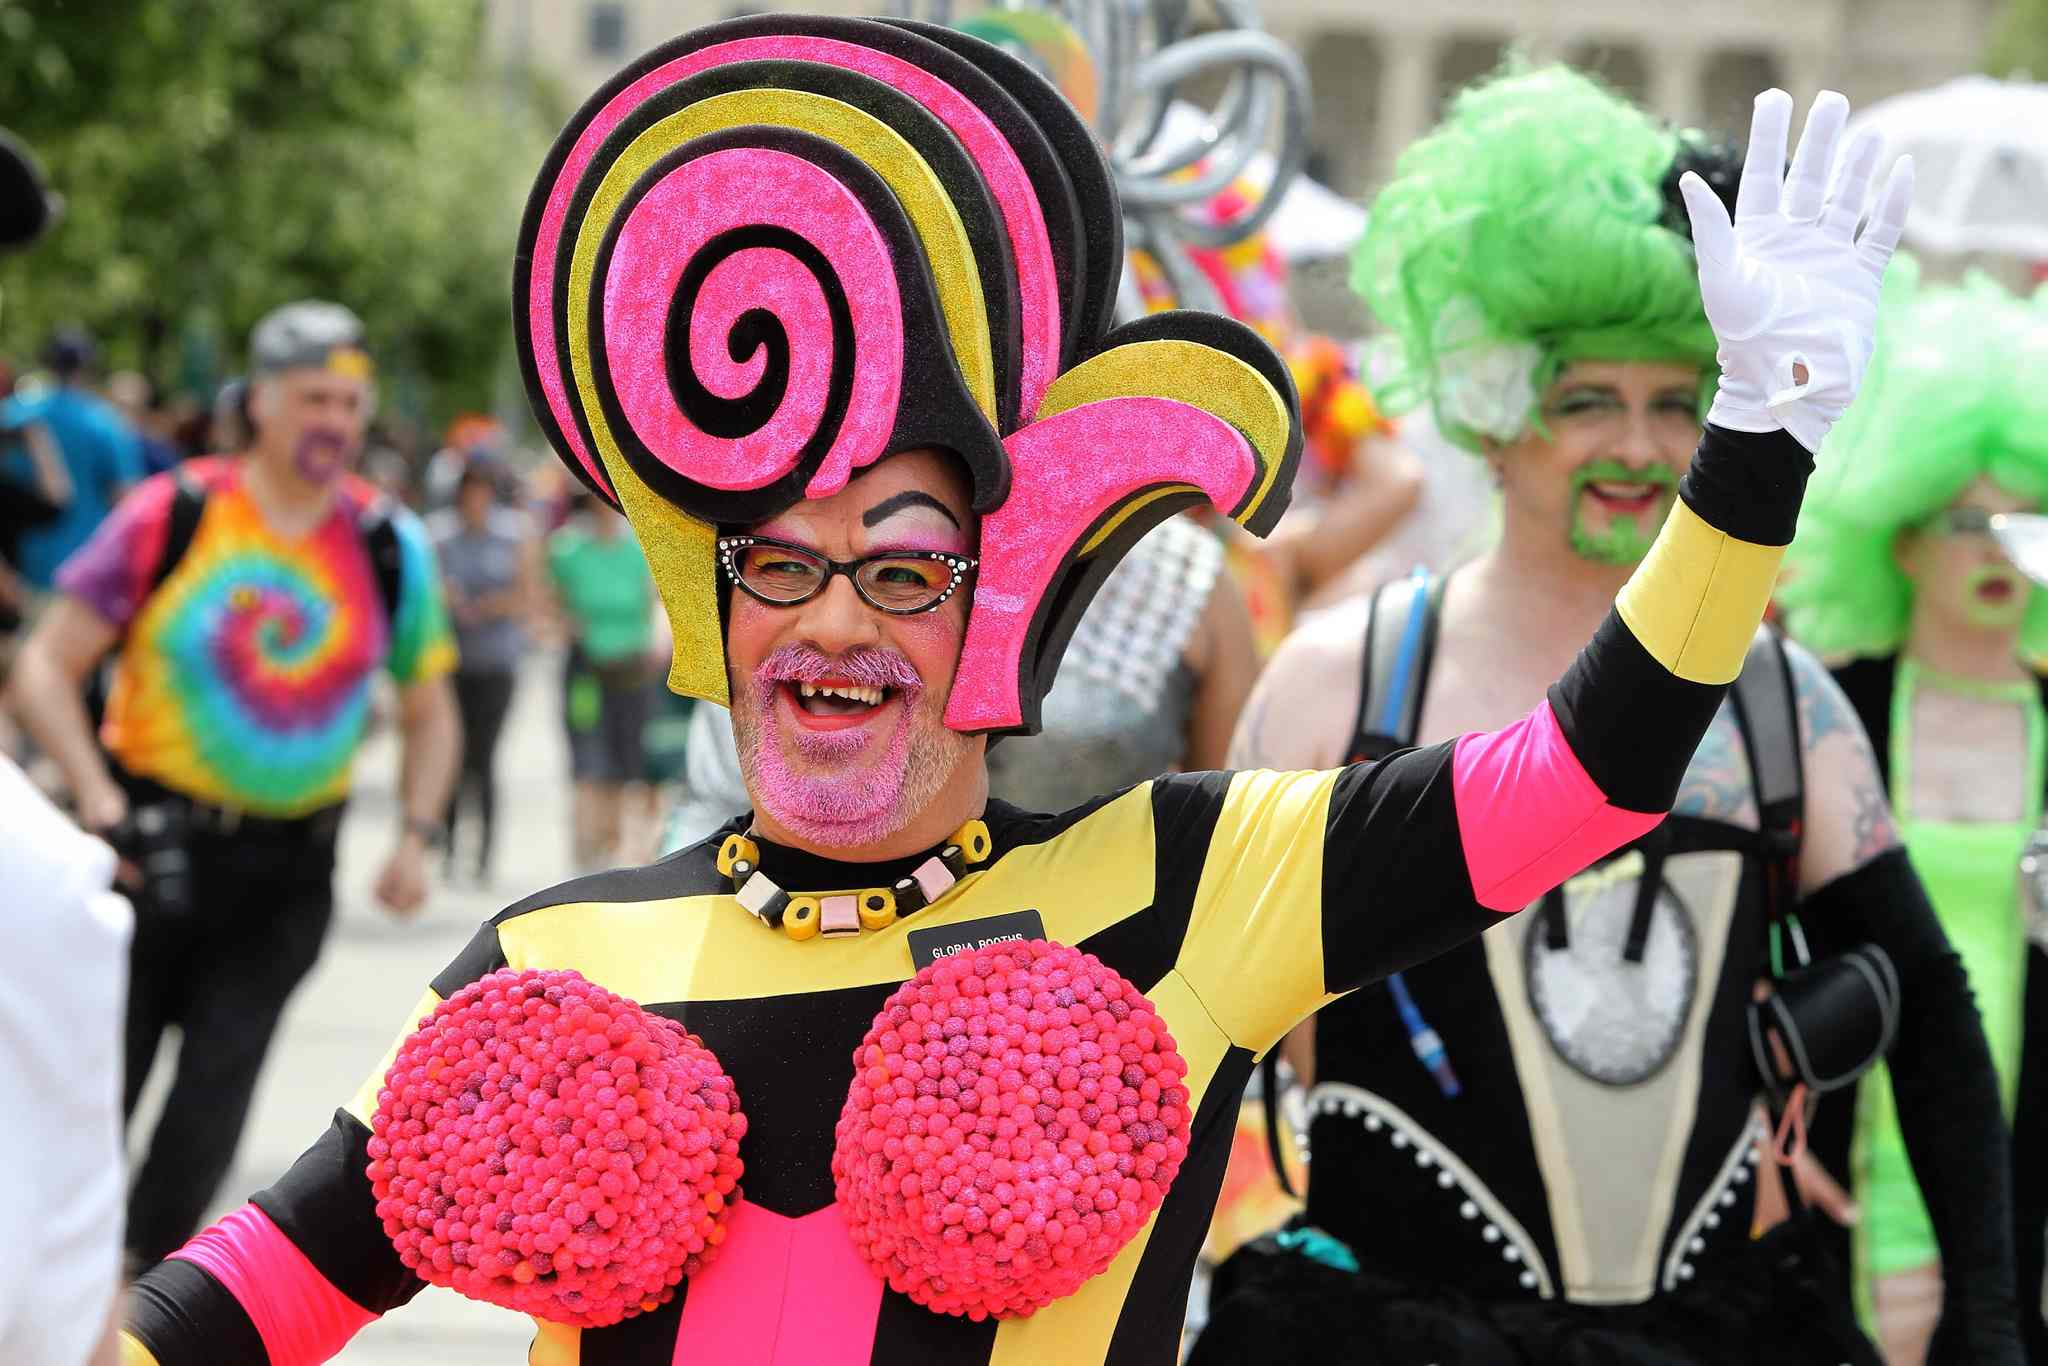 About 10,000 Winnipeggers let it all hang out during the Pride parade at the legislature Sunday.